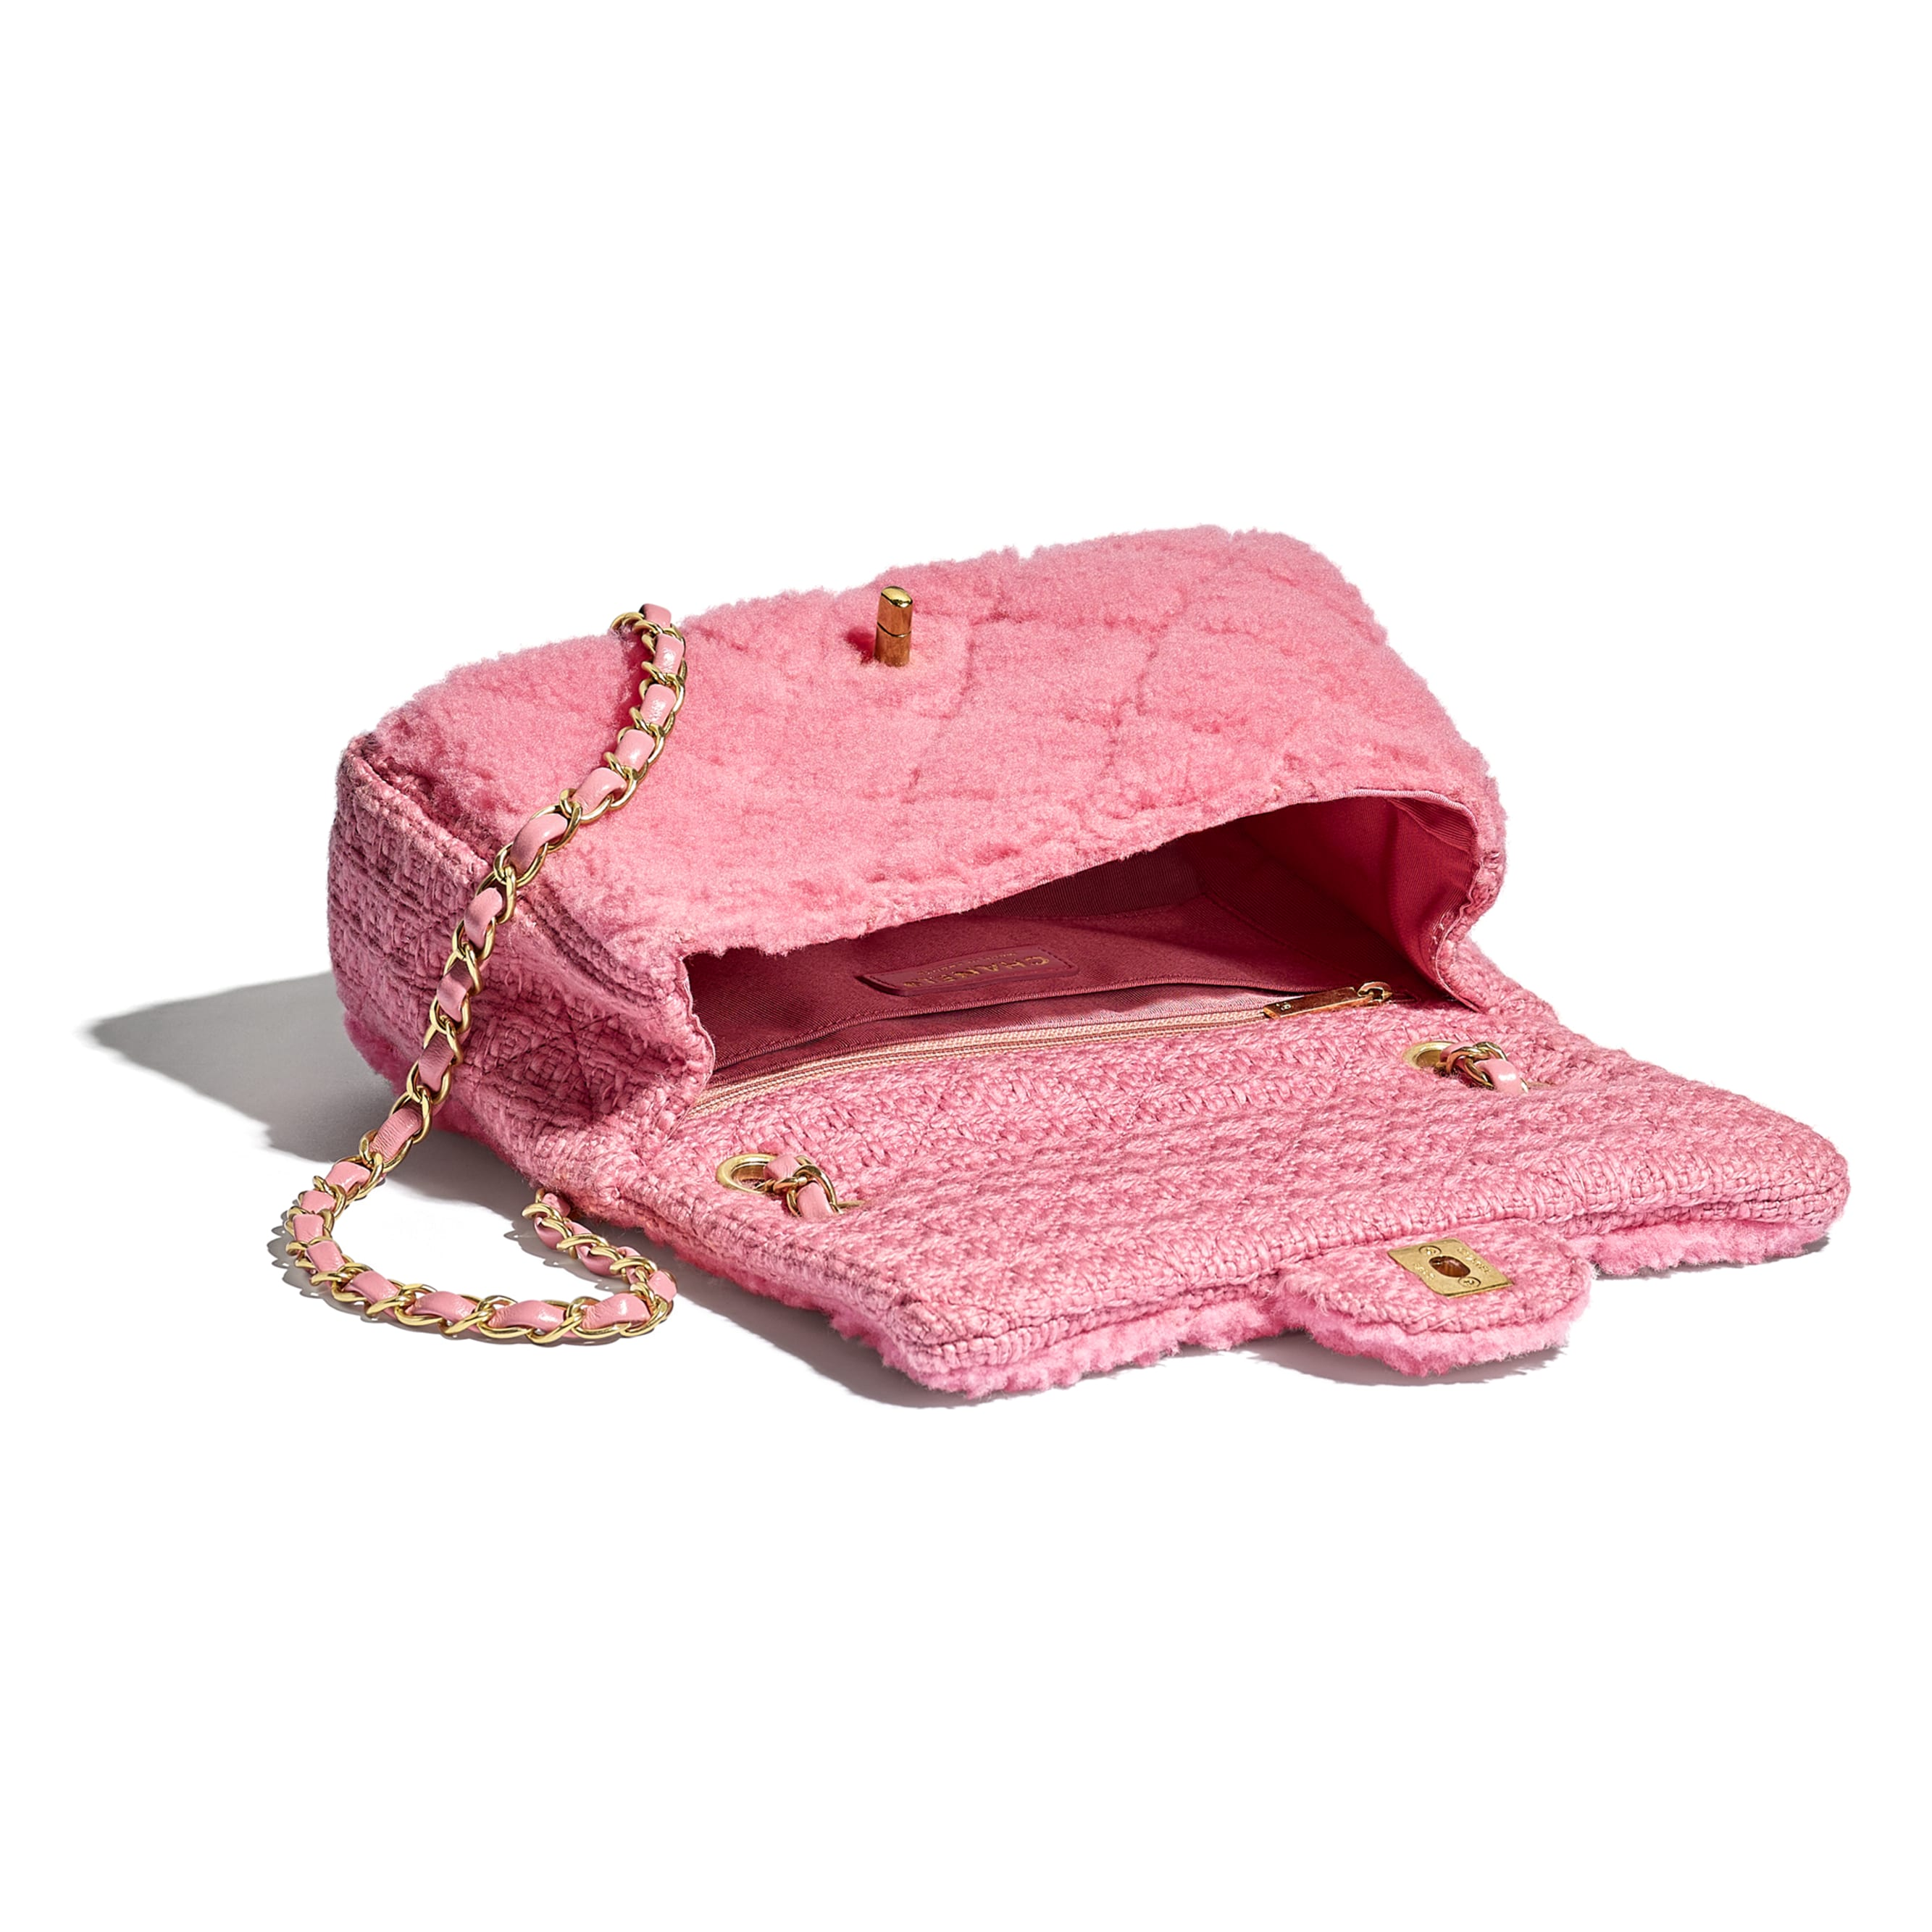 Flap Bag - Pink - Shearling Sheepskin, Tweed & Gold-Tone Metal - CHANEL - Other view - see standard sized version